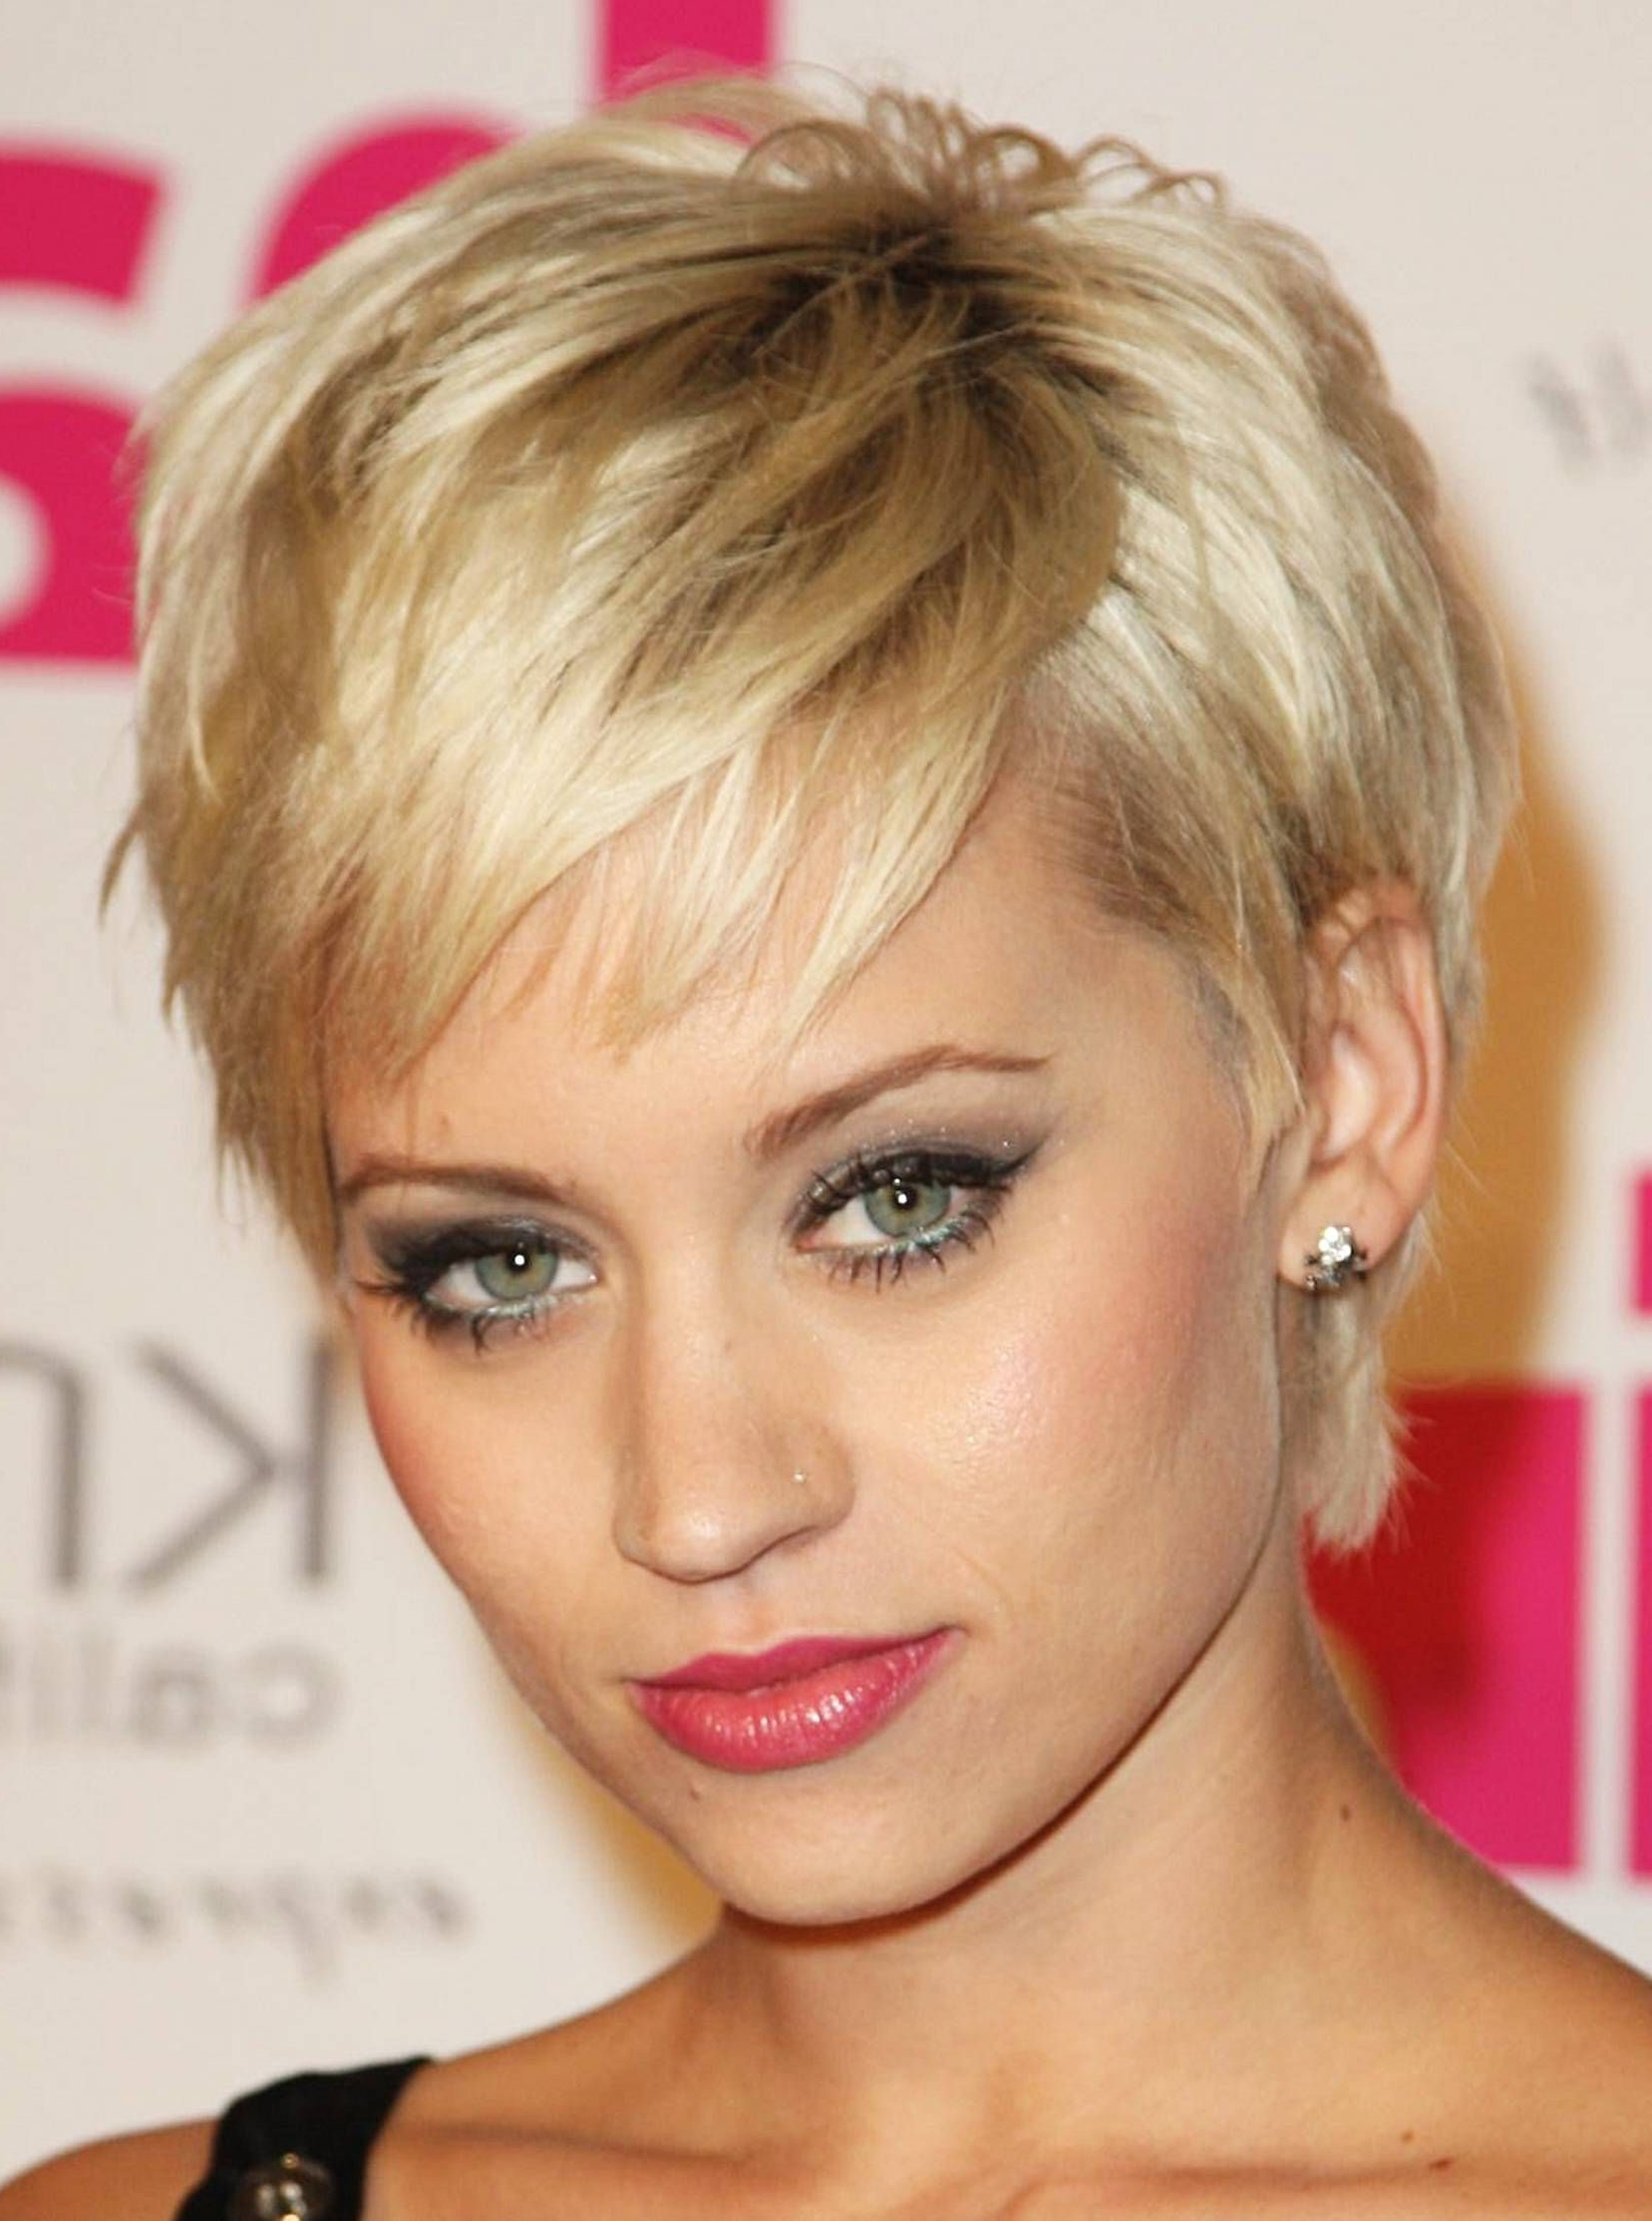 How To Short Blonde Hair Makes You Look Younger | Short Blonde Pertaining To Short Haircuts That Make You Look Younger (View 6 of 25)